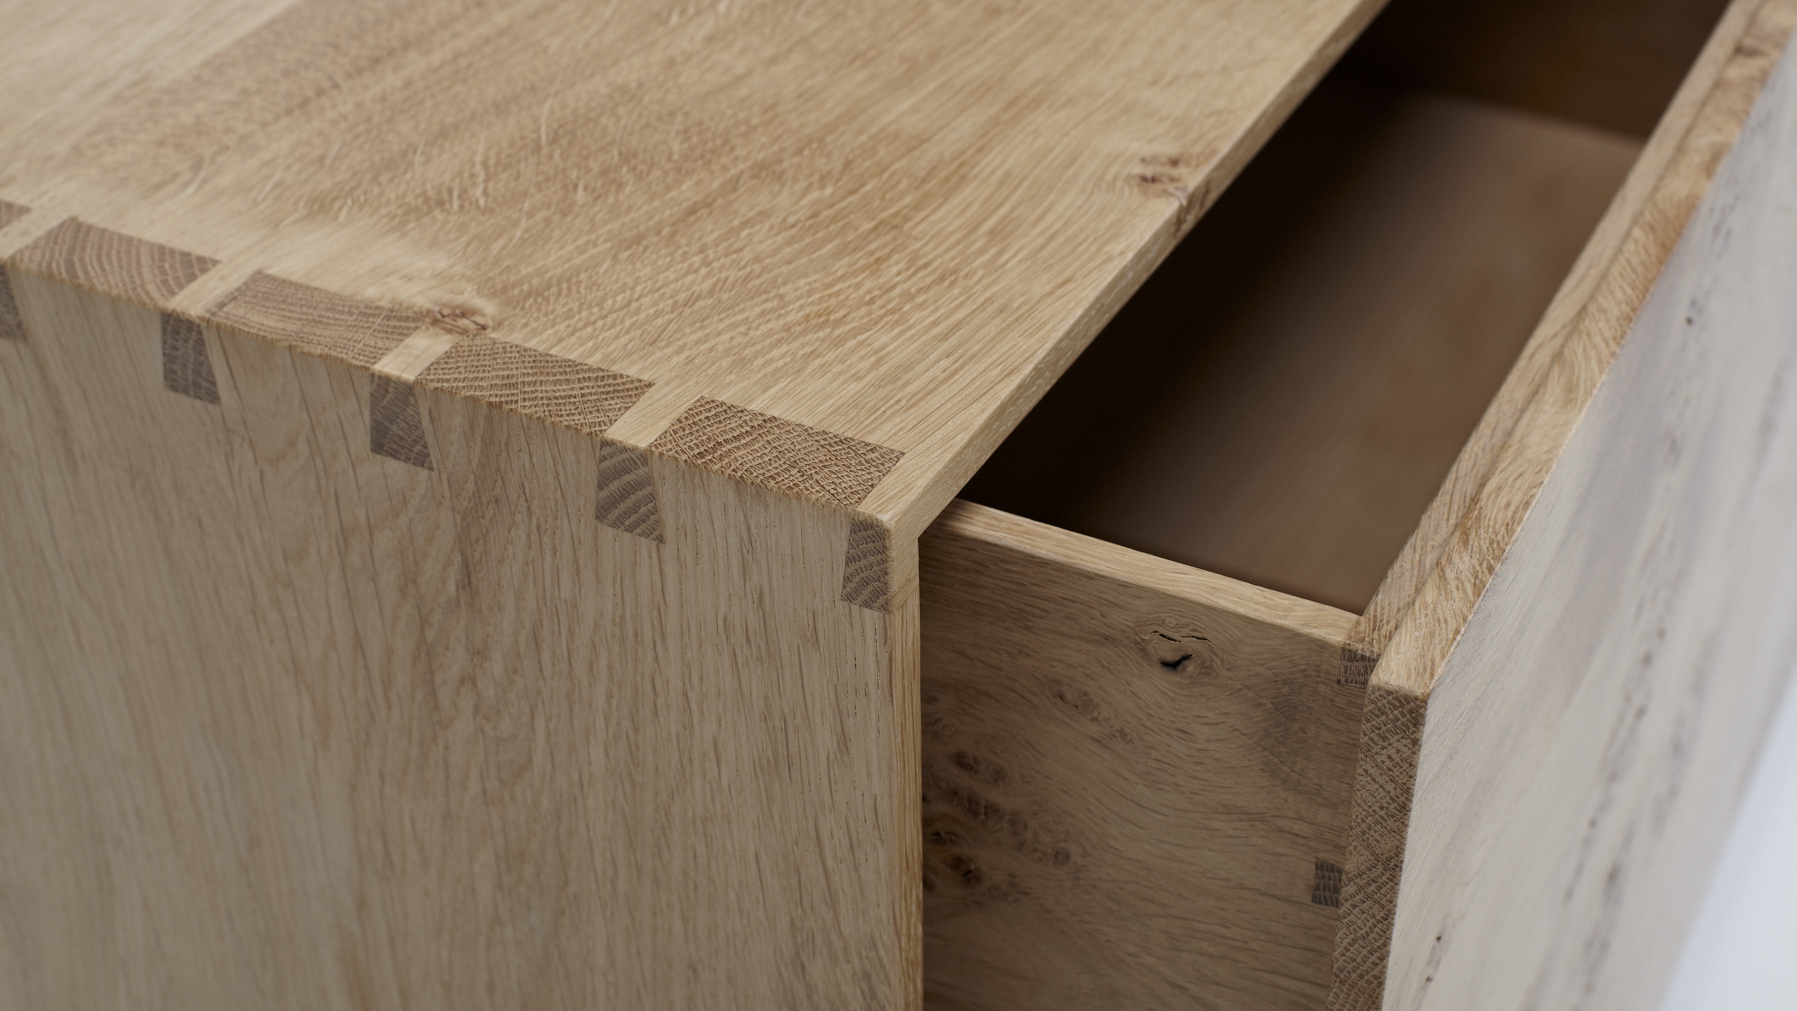 Dovetail detail on linen press: Furniture design by James Smith